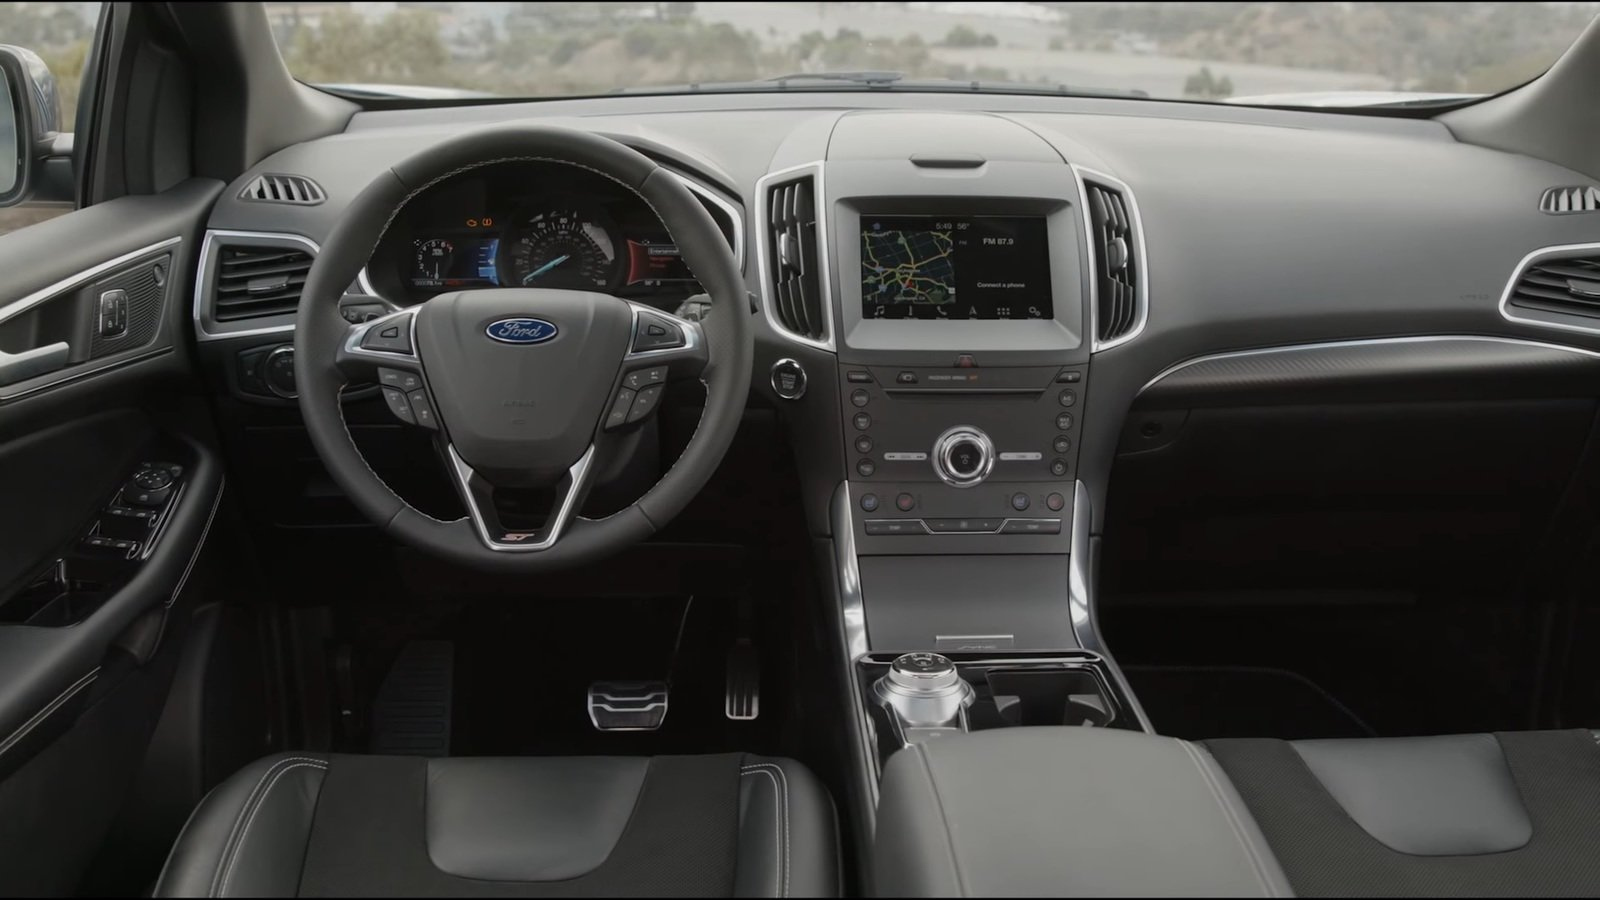 Photos and specifications of Ford Edge ST 2019 Sport Photos and specifications of Ford Edge ST 2019 Sport  D8 AF D8 A7 D8 AE D9 84 D9 8A D8 A9  D9 81 D9 88 D8 B1 D8 AF  D8 A7 D9 8A D8 AF D8 AC ST 2019